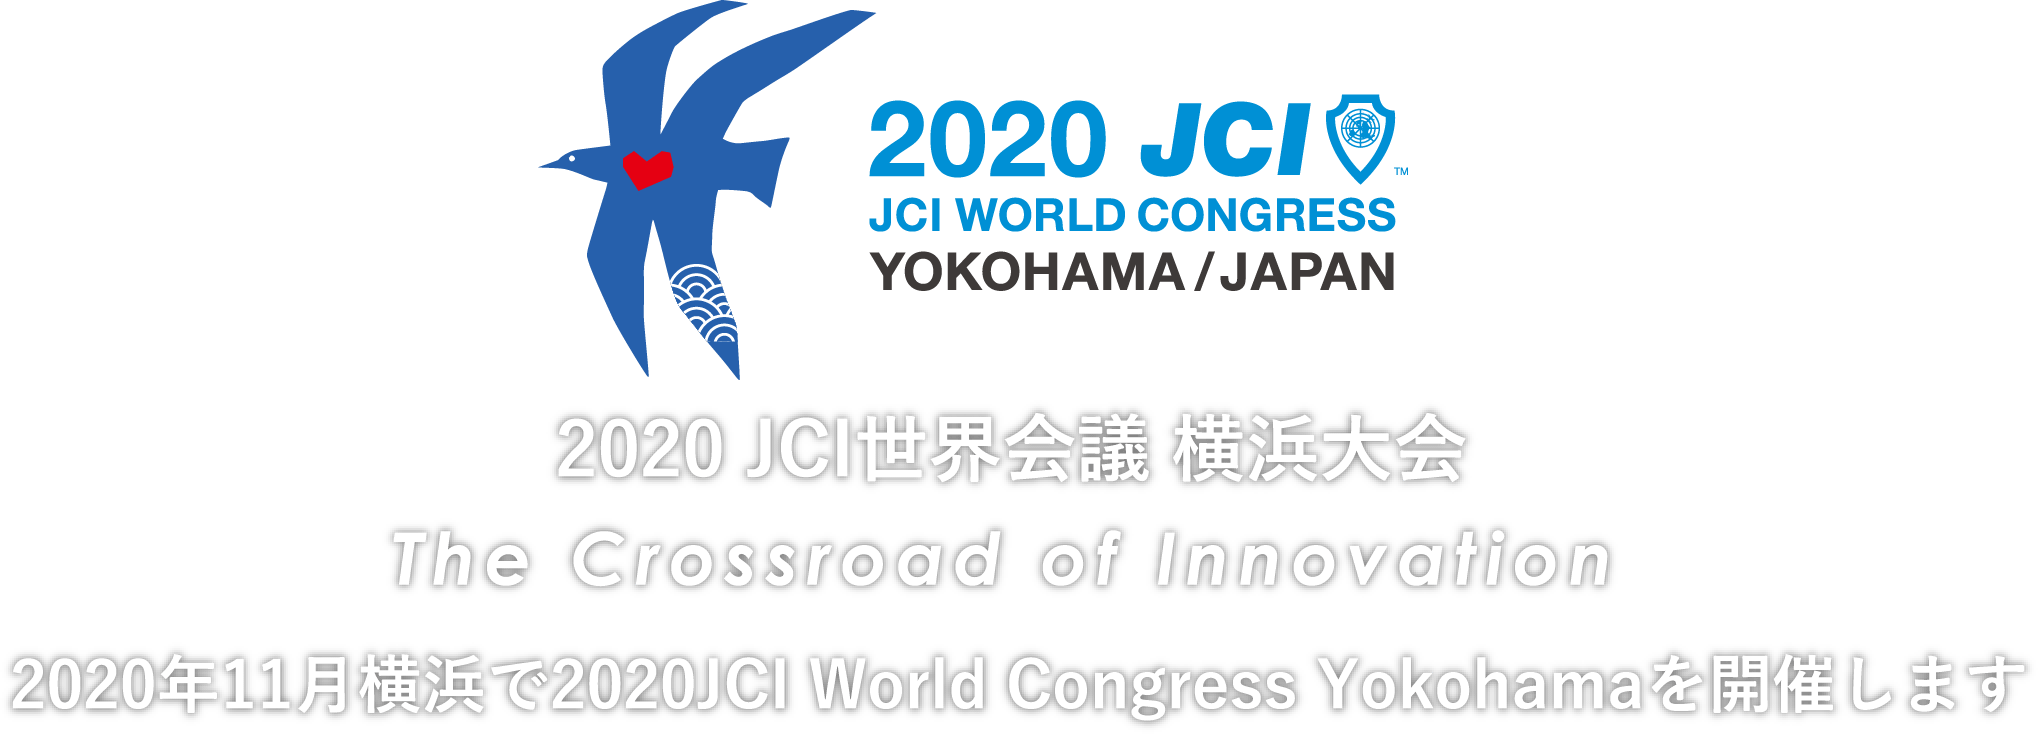 JCI WORLD CONGRESS